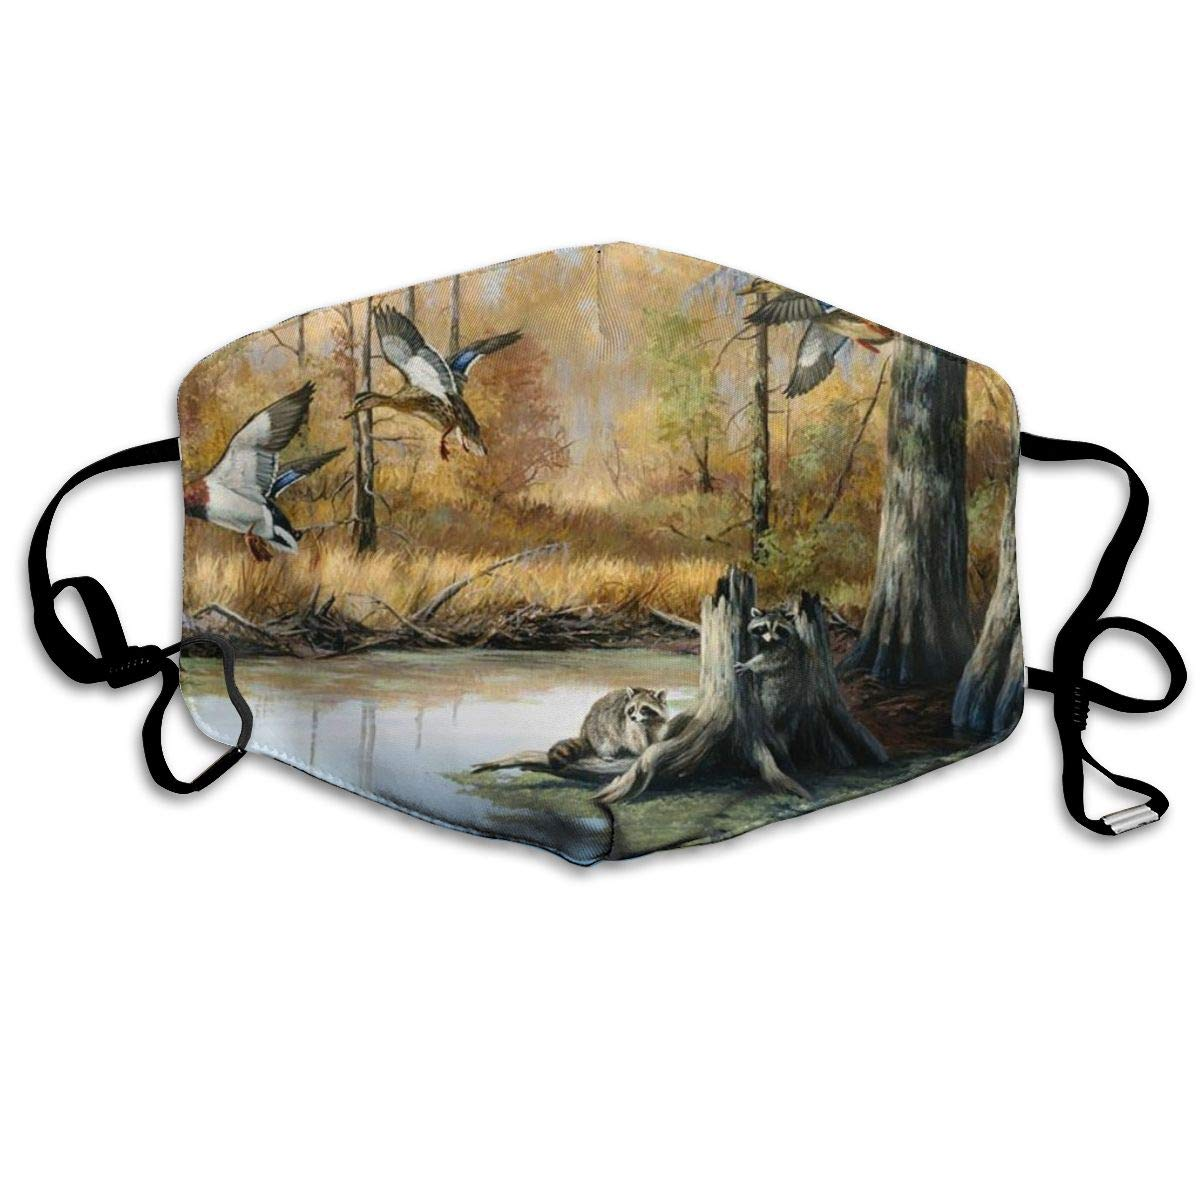 Mouth Mask Hunting Flying Wild Ducks Print Masks - Breathable Adjustable Windproof Mouth-Muffle, Camping Running For Women And